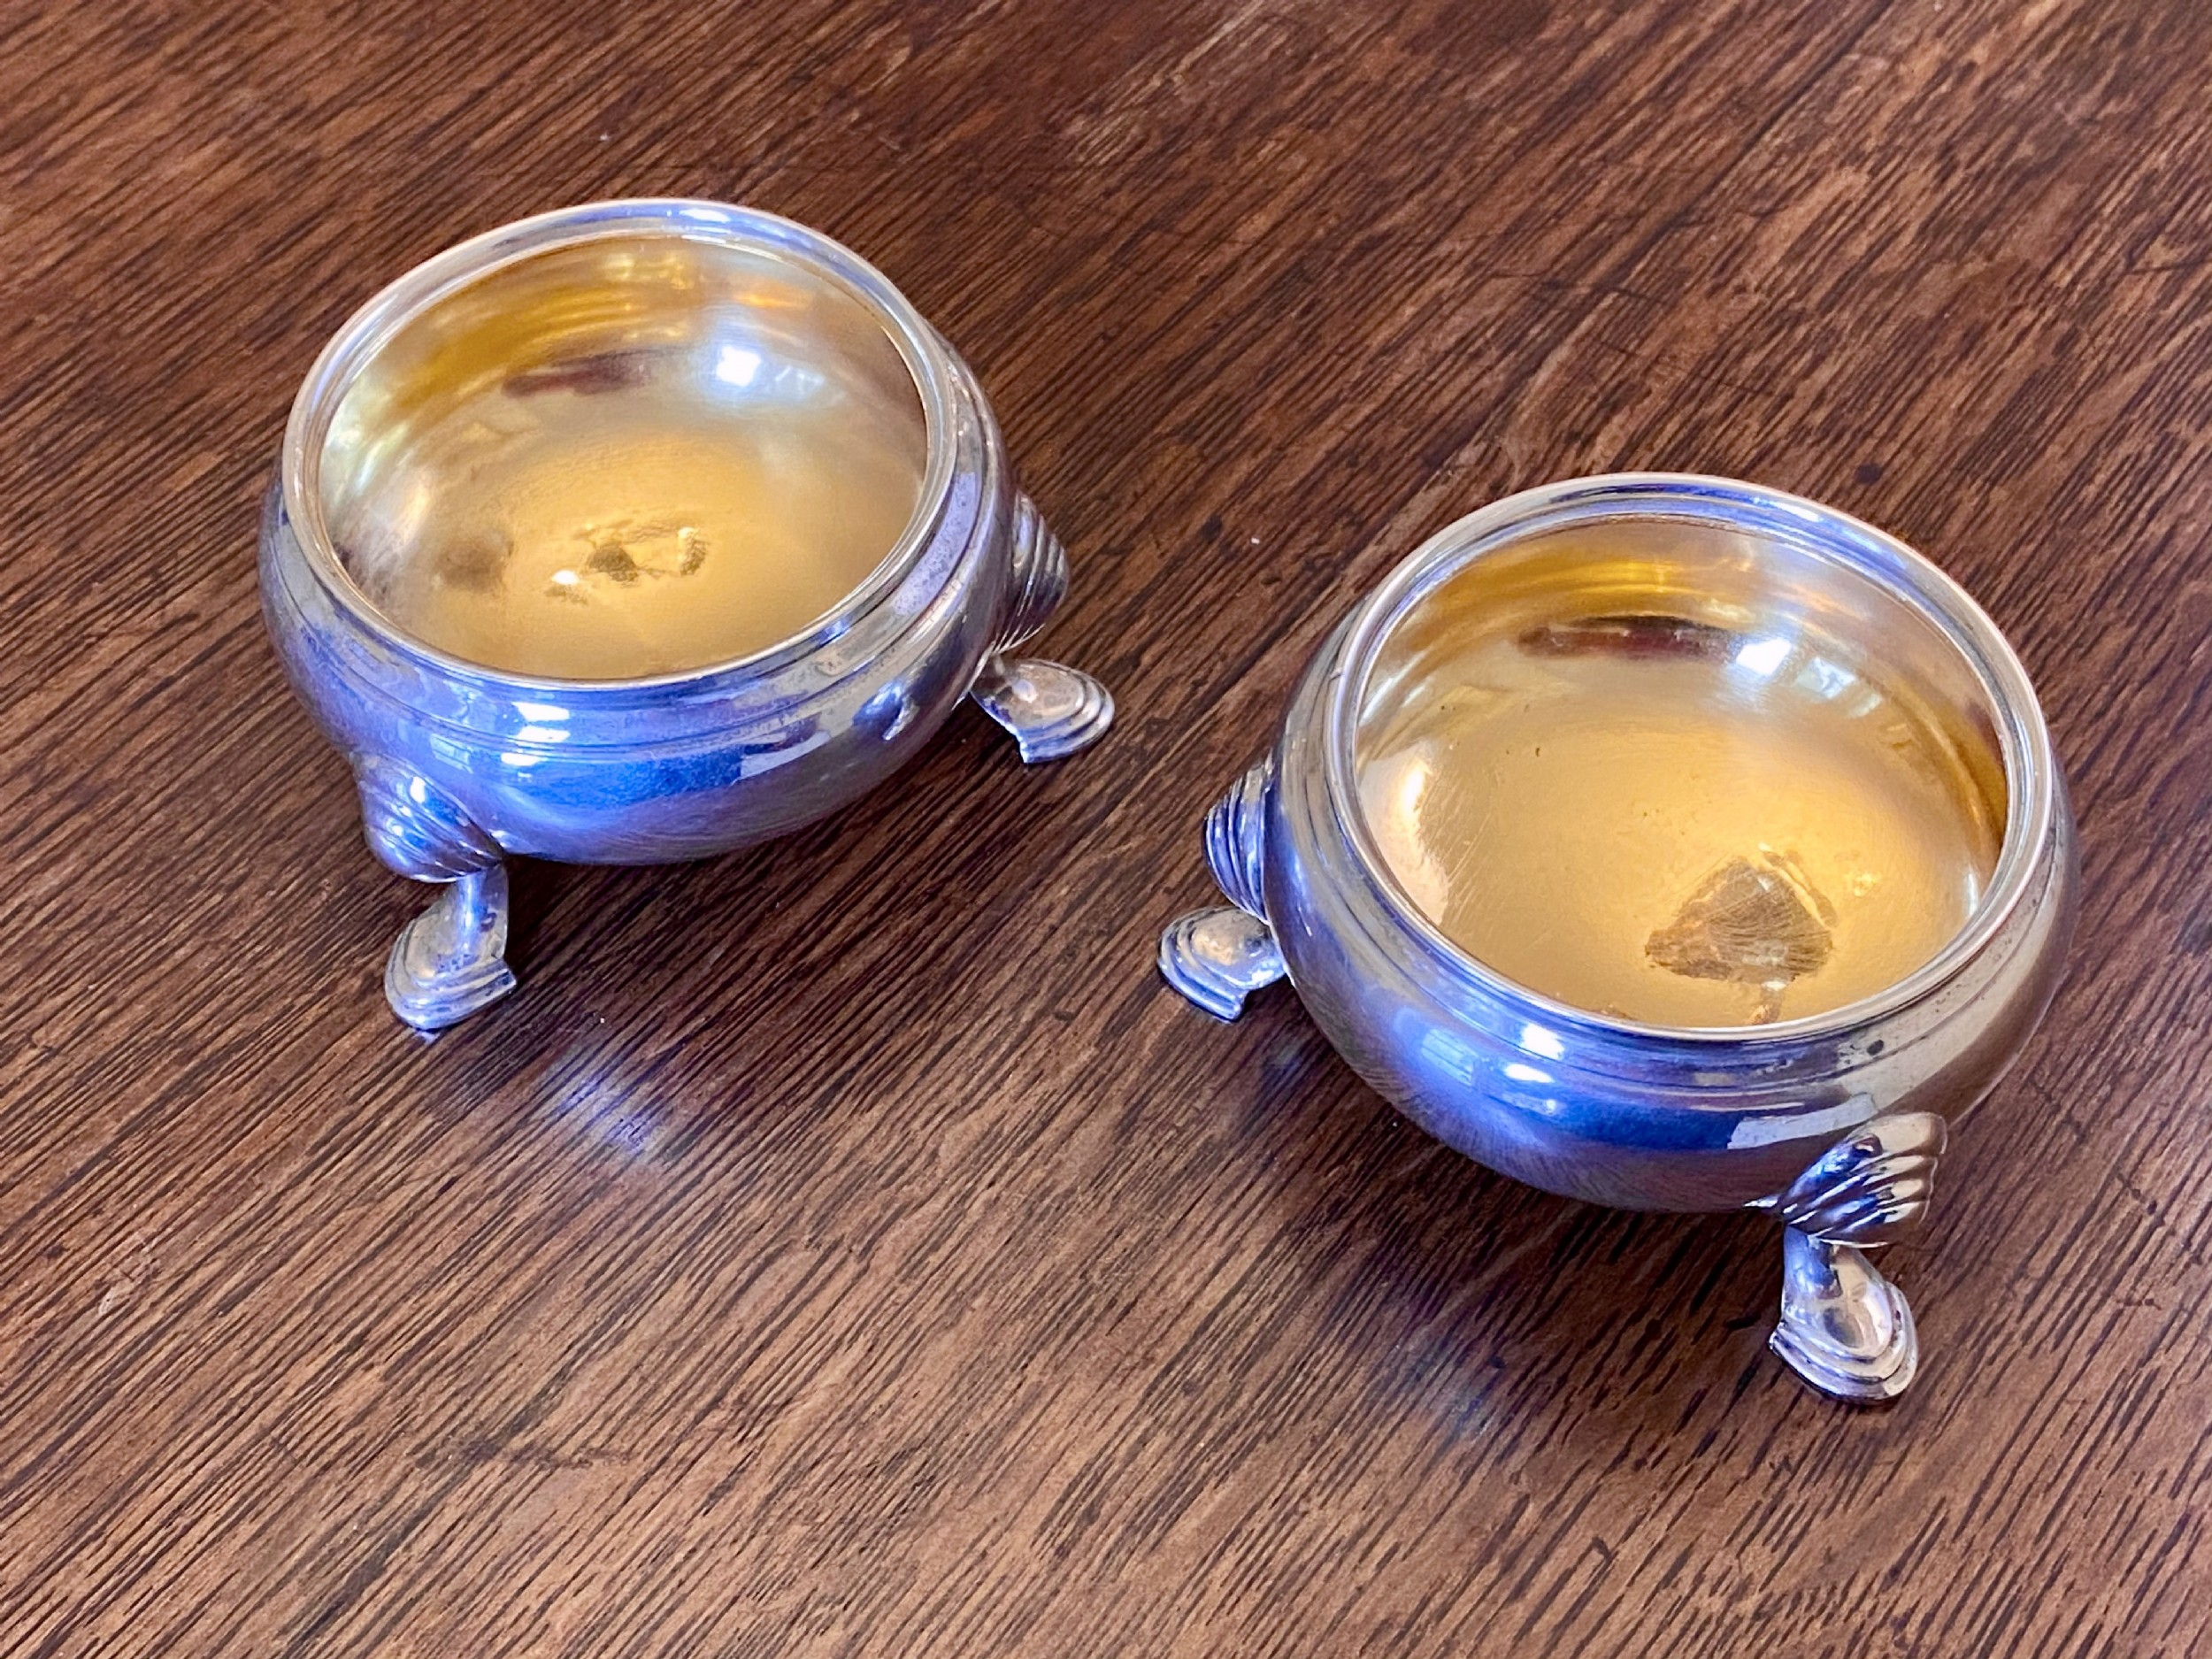 pair of silver salts with gilded bowls